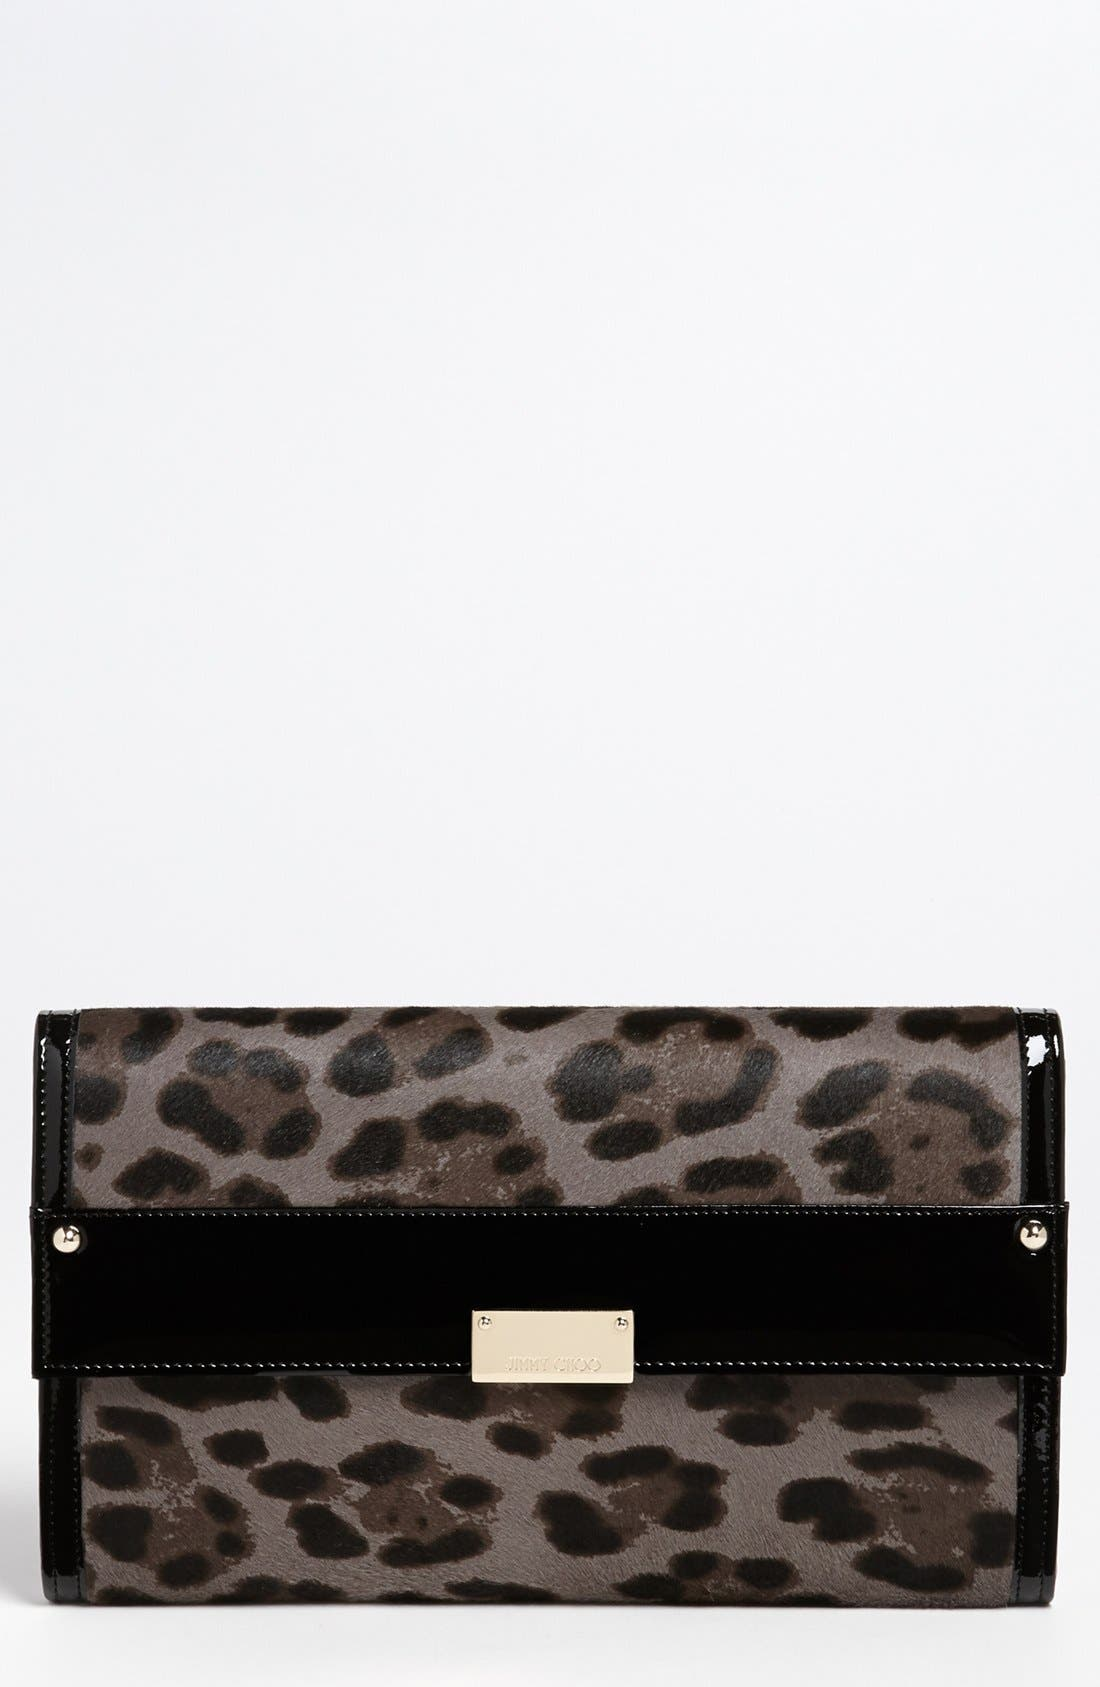 Main Image - Jimmy Choo 'Reese - Extra Large' Leopard Print Calf Hair Clutch